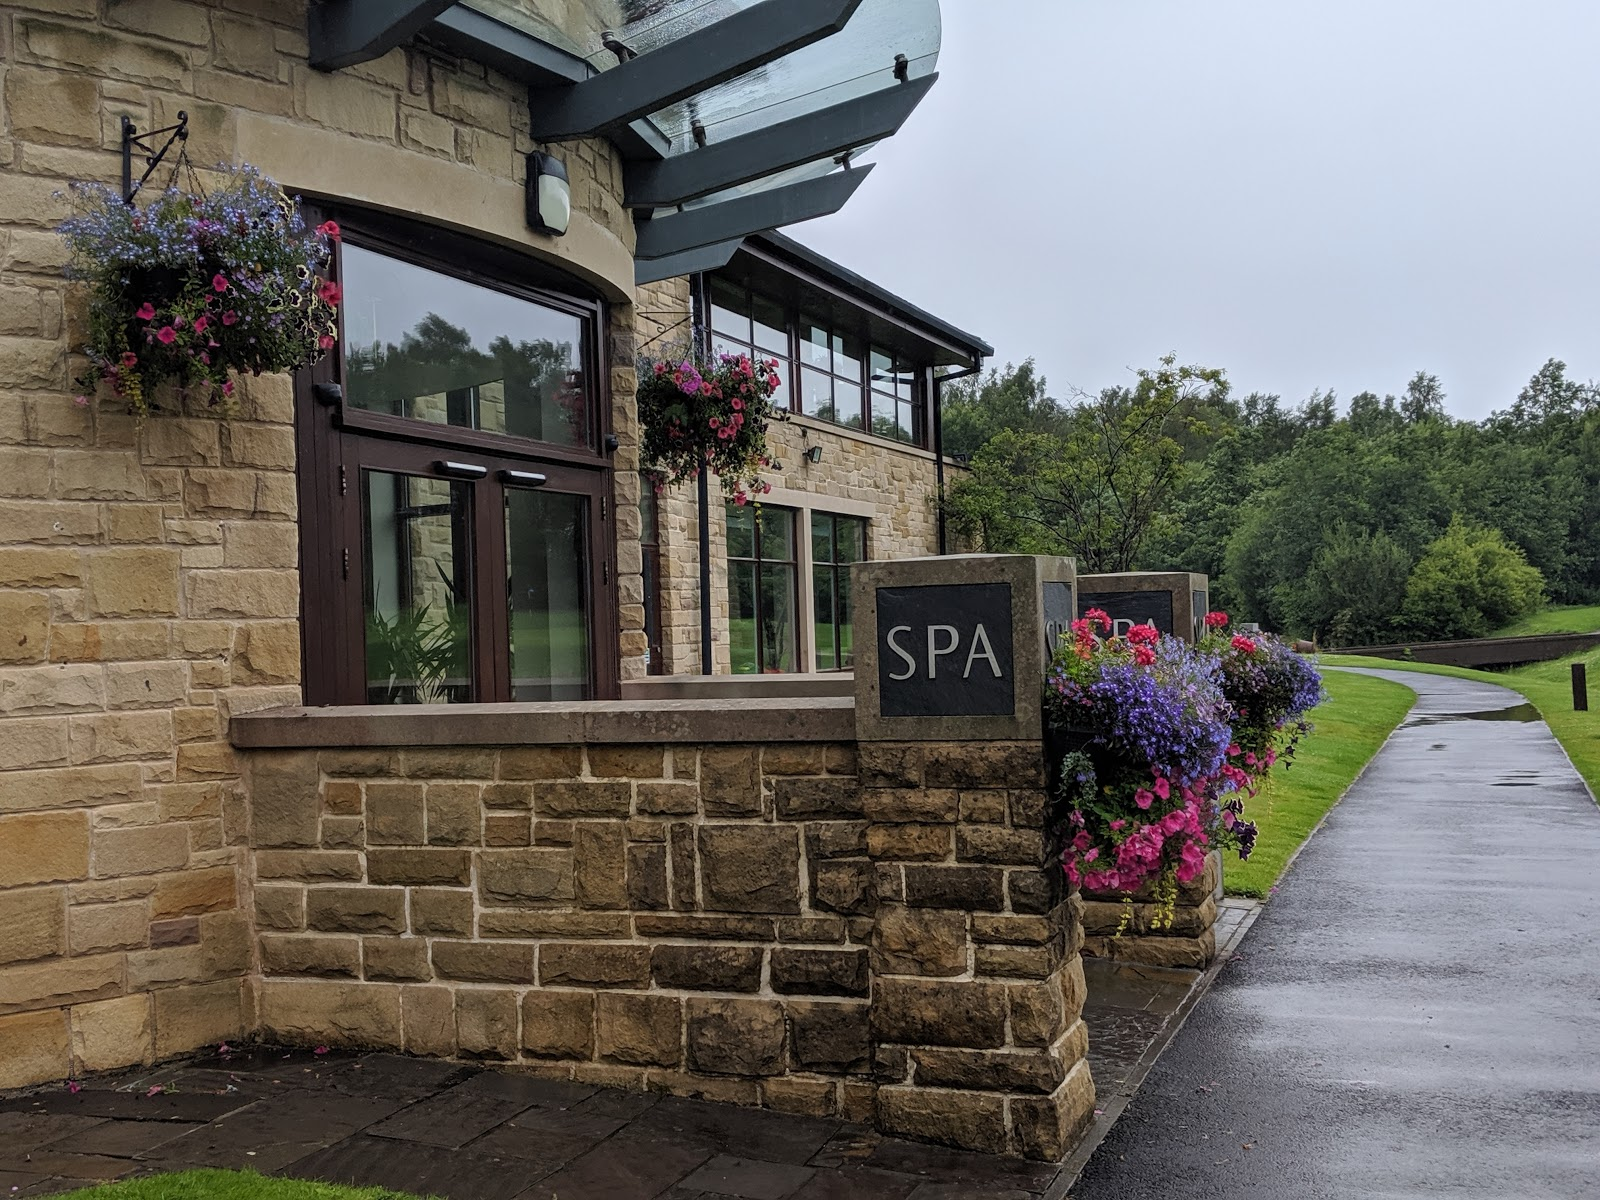 A Short Break at Cameron Lodges, Loch Lomond - lodge 116 spa reception